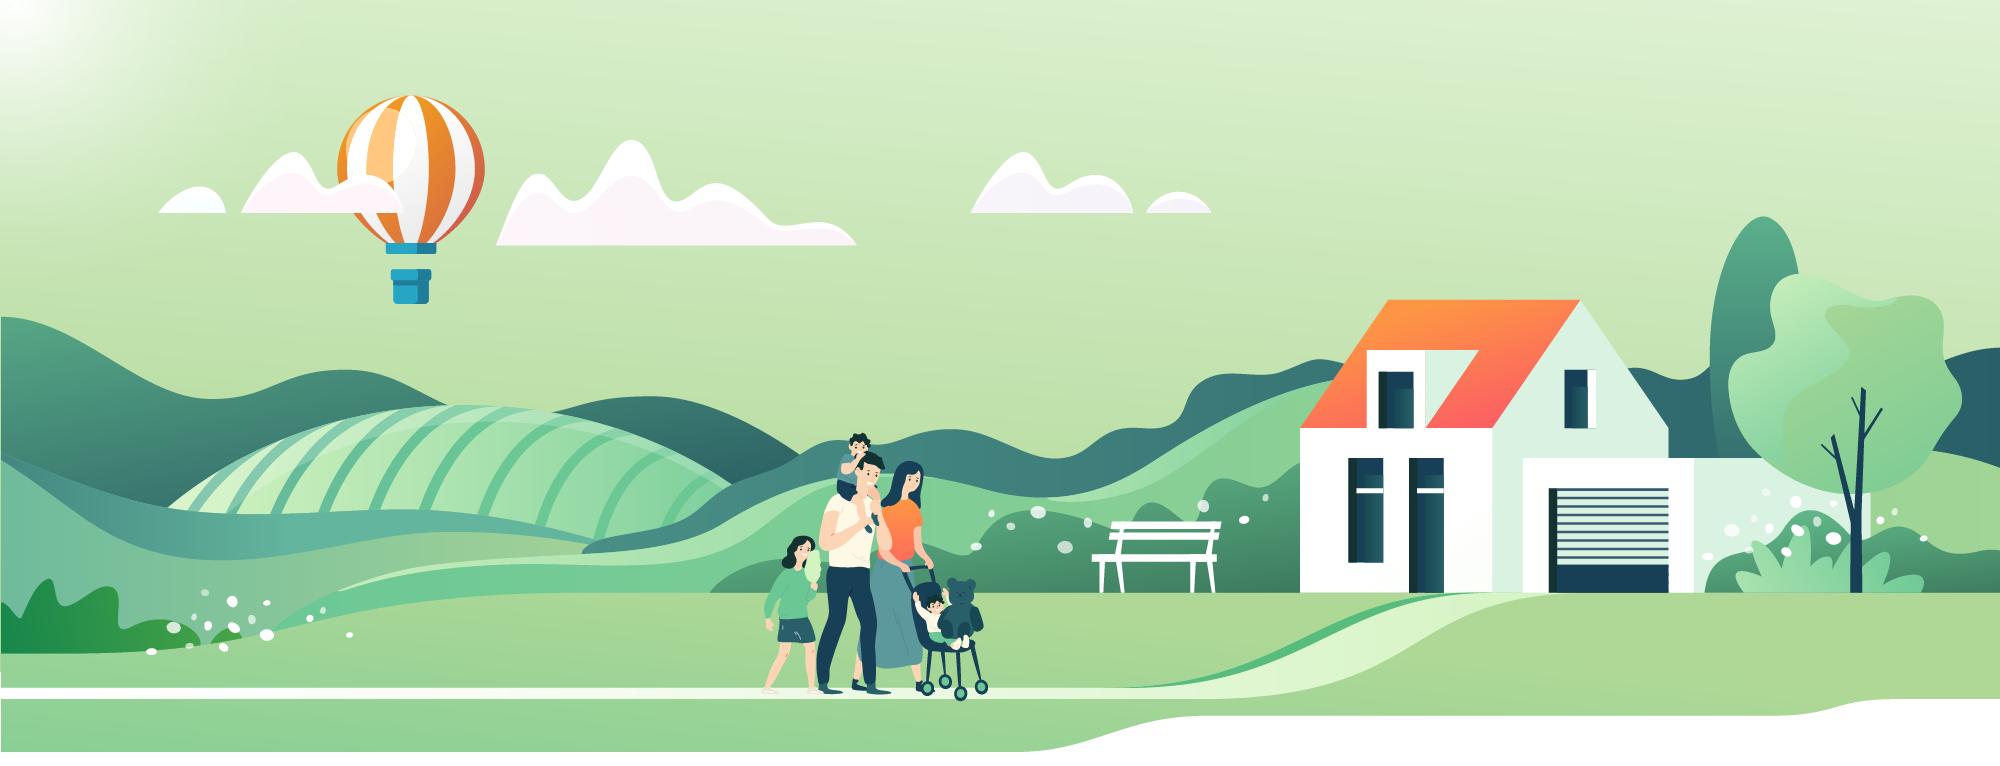 Illustrated scene of family walking to their home.